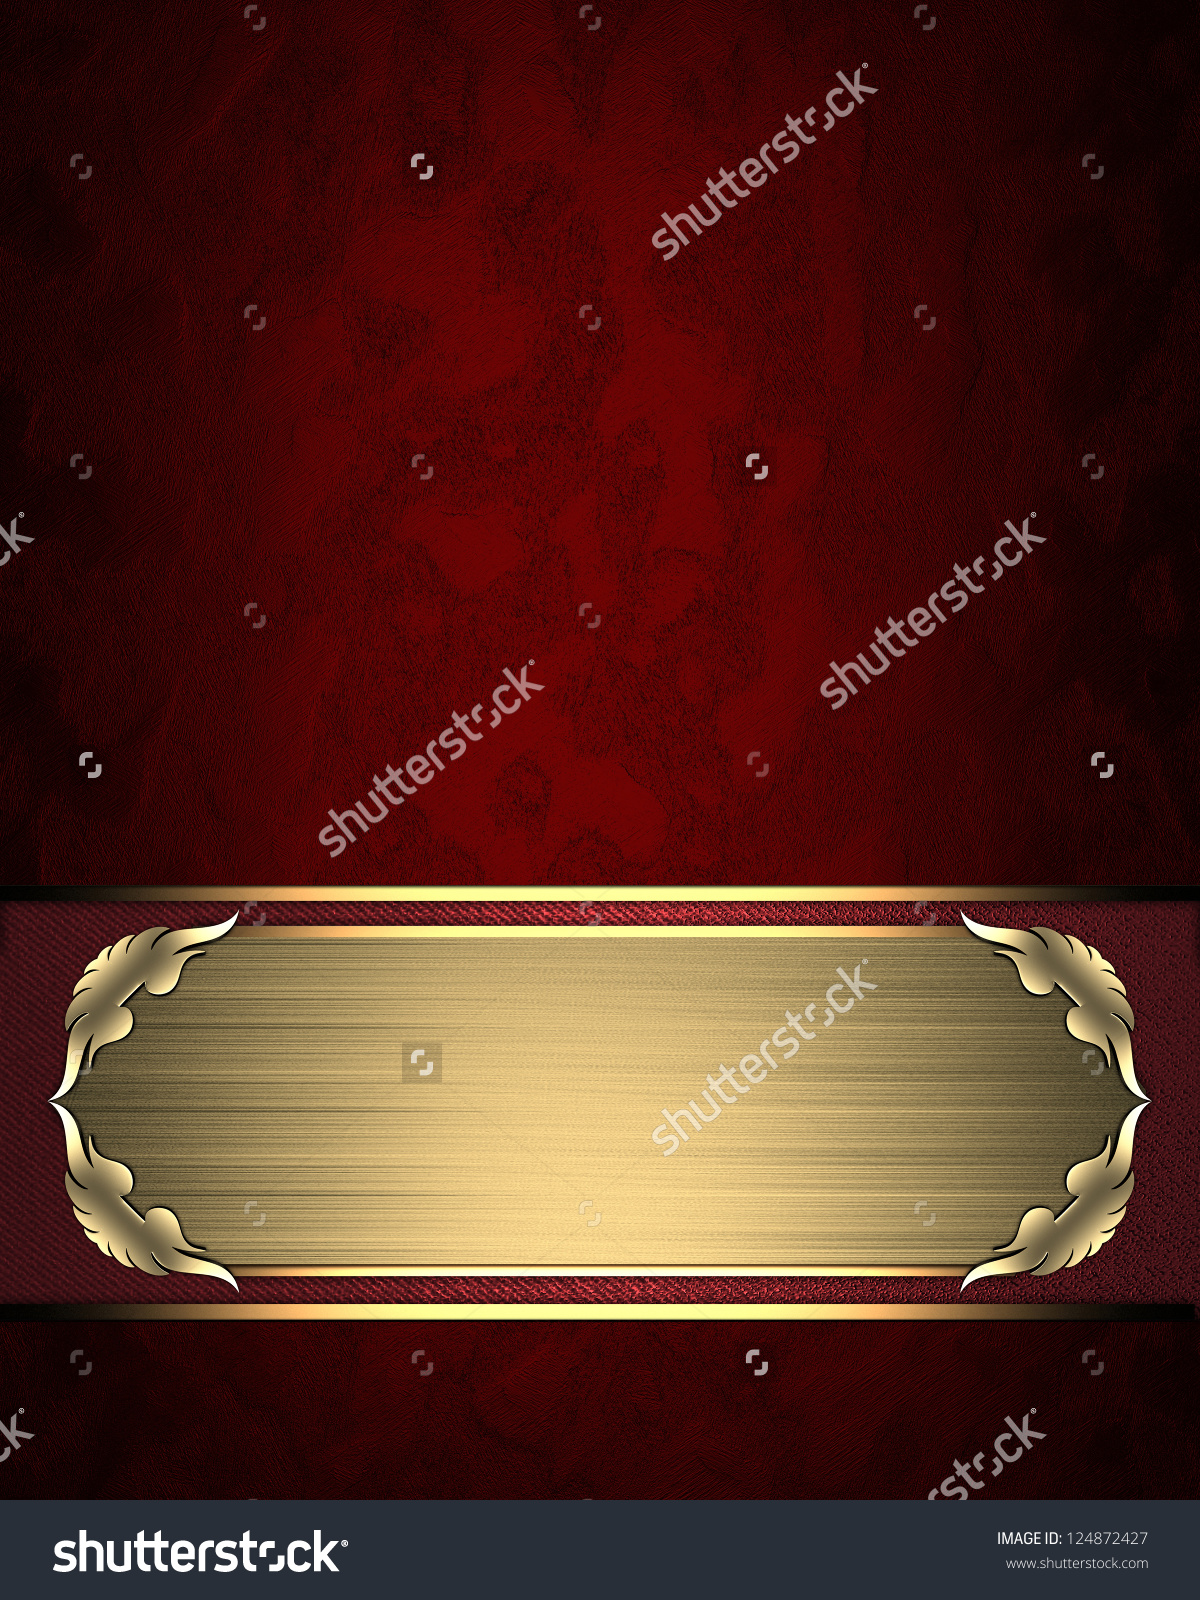 Design Template Red Texture Gold Name Stock Illustration 124872427.